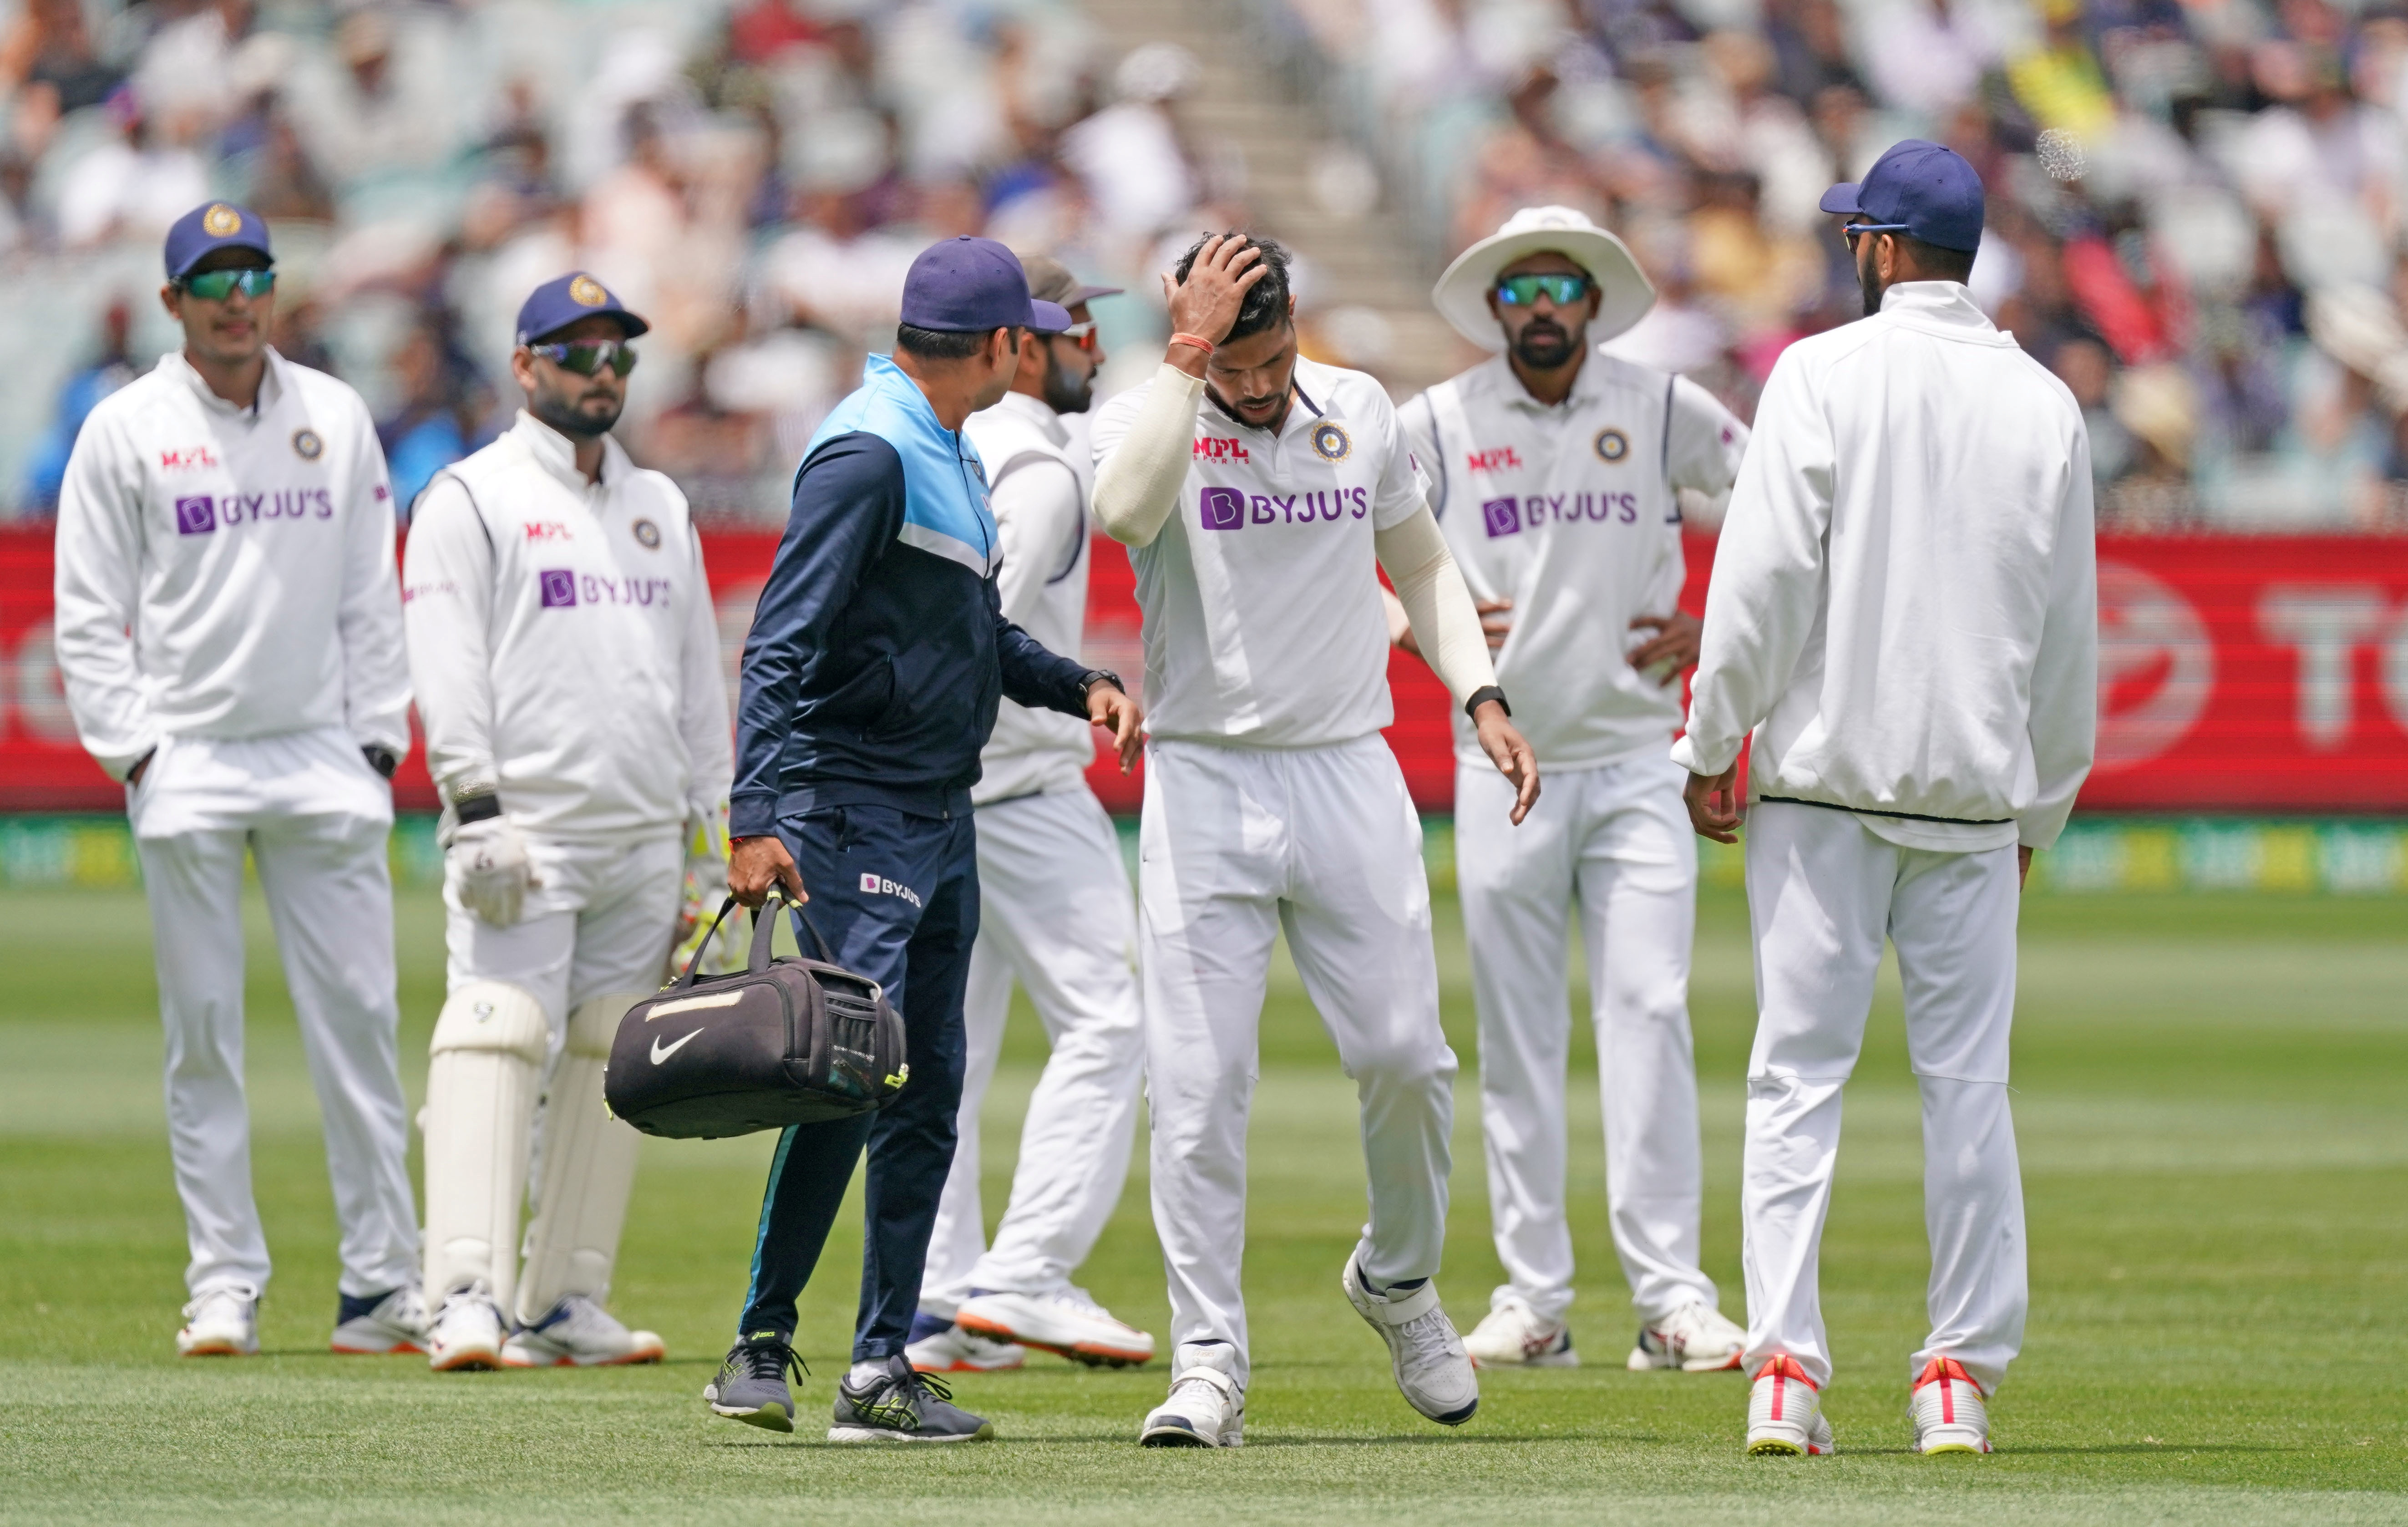 India's Umesh Yadav leaves the field injured during day three of the second test match between Australia and India at The MCG, Melbourne, Australia, December 28, 2020. Photo: Reuters